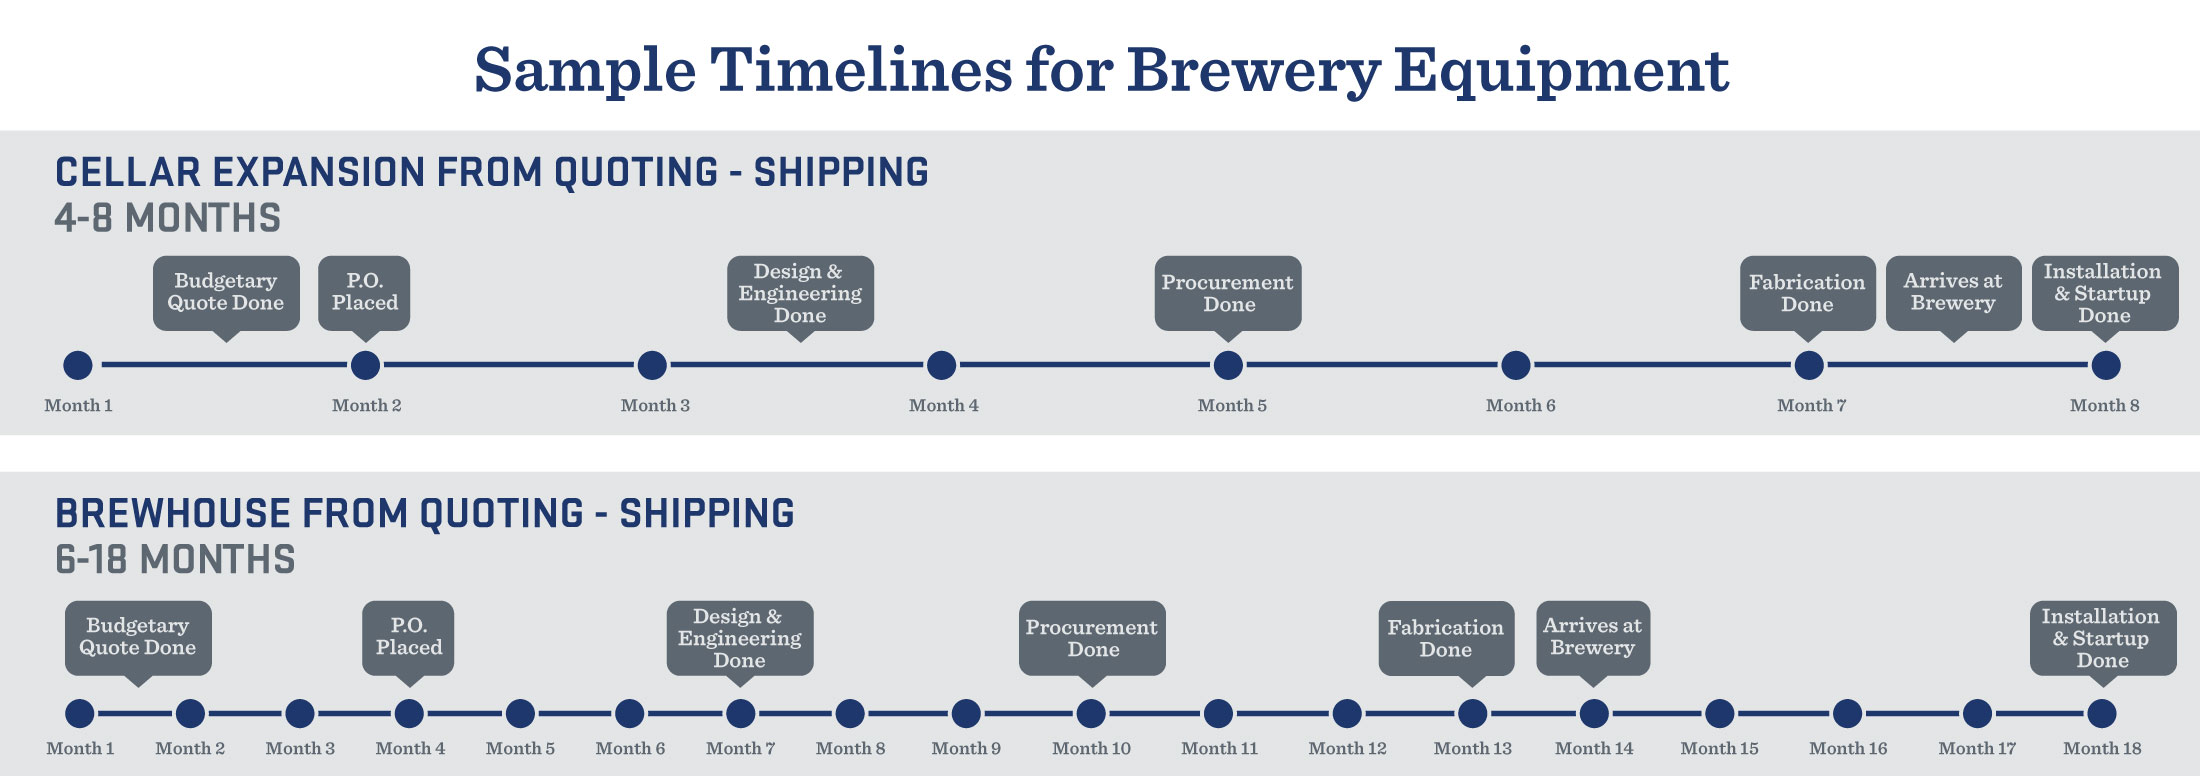 Brewery Equipment Purchasing Timeline